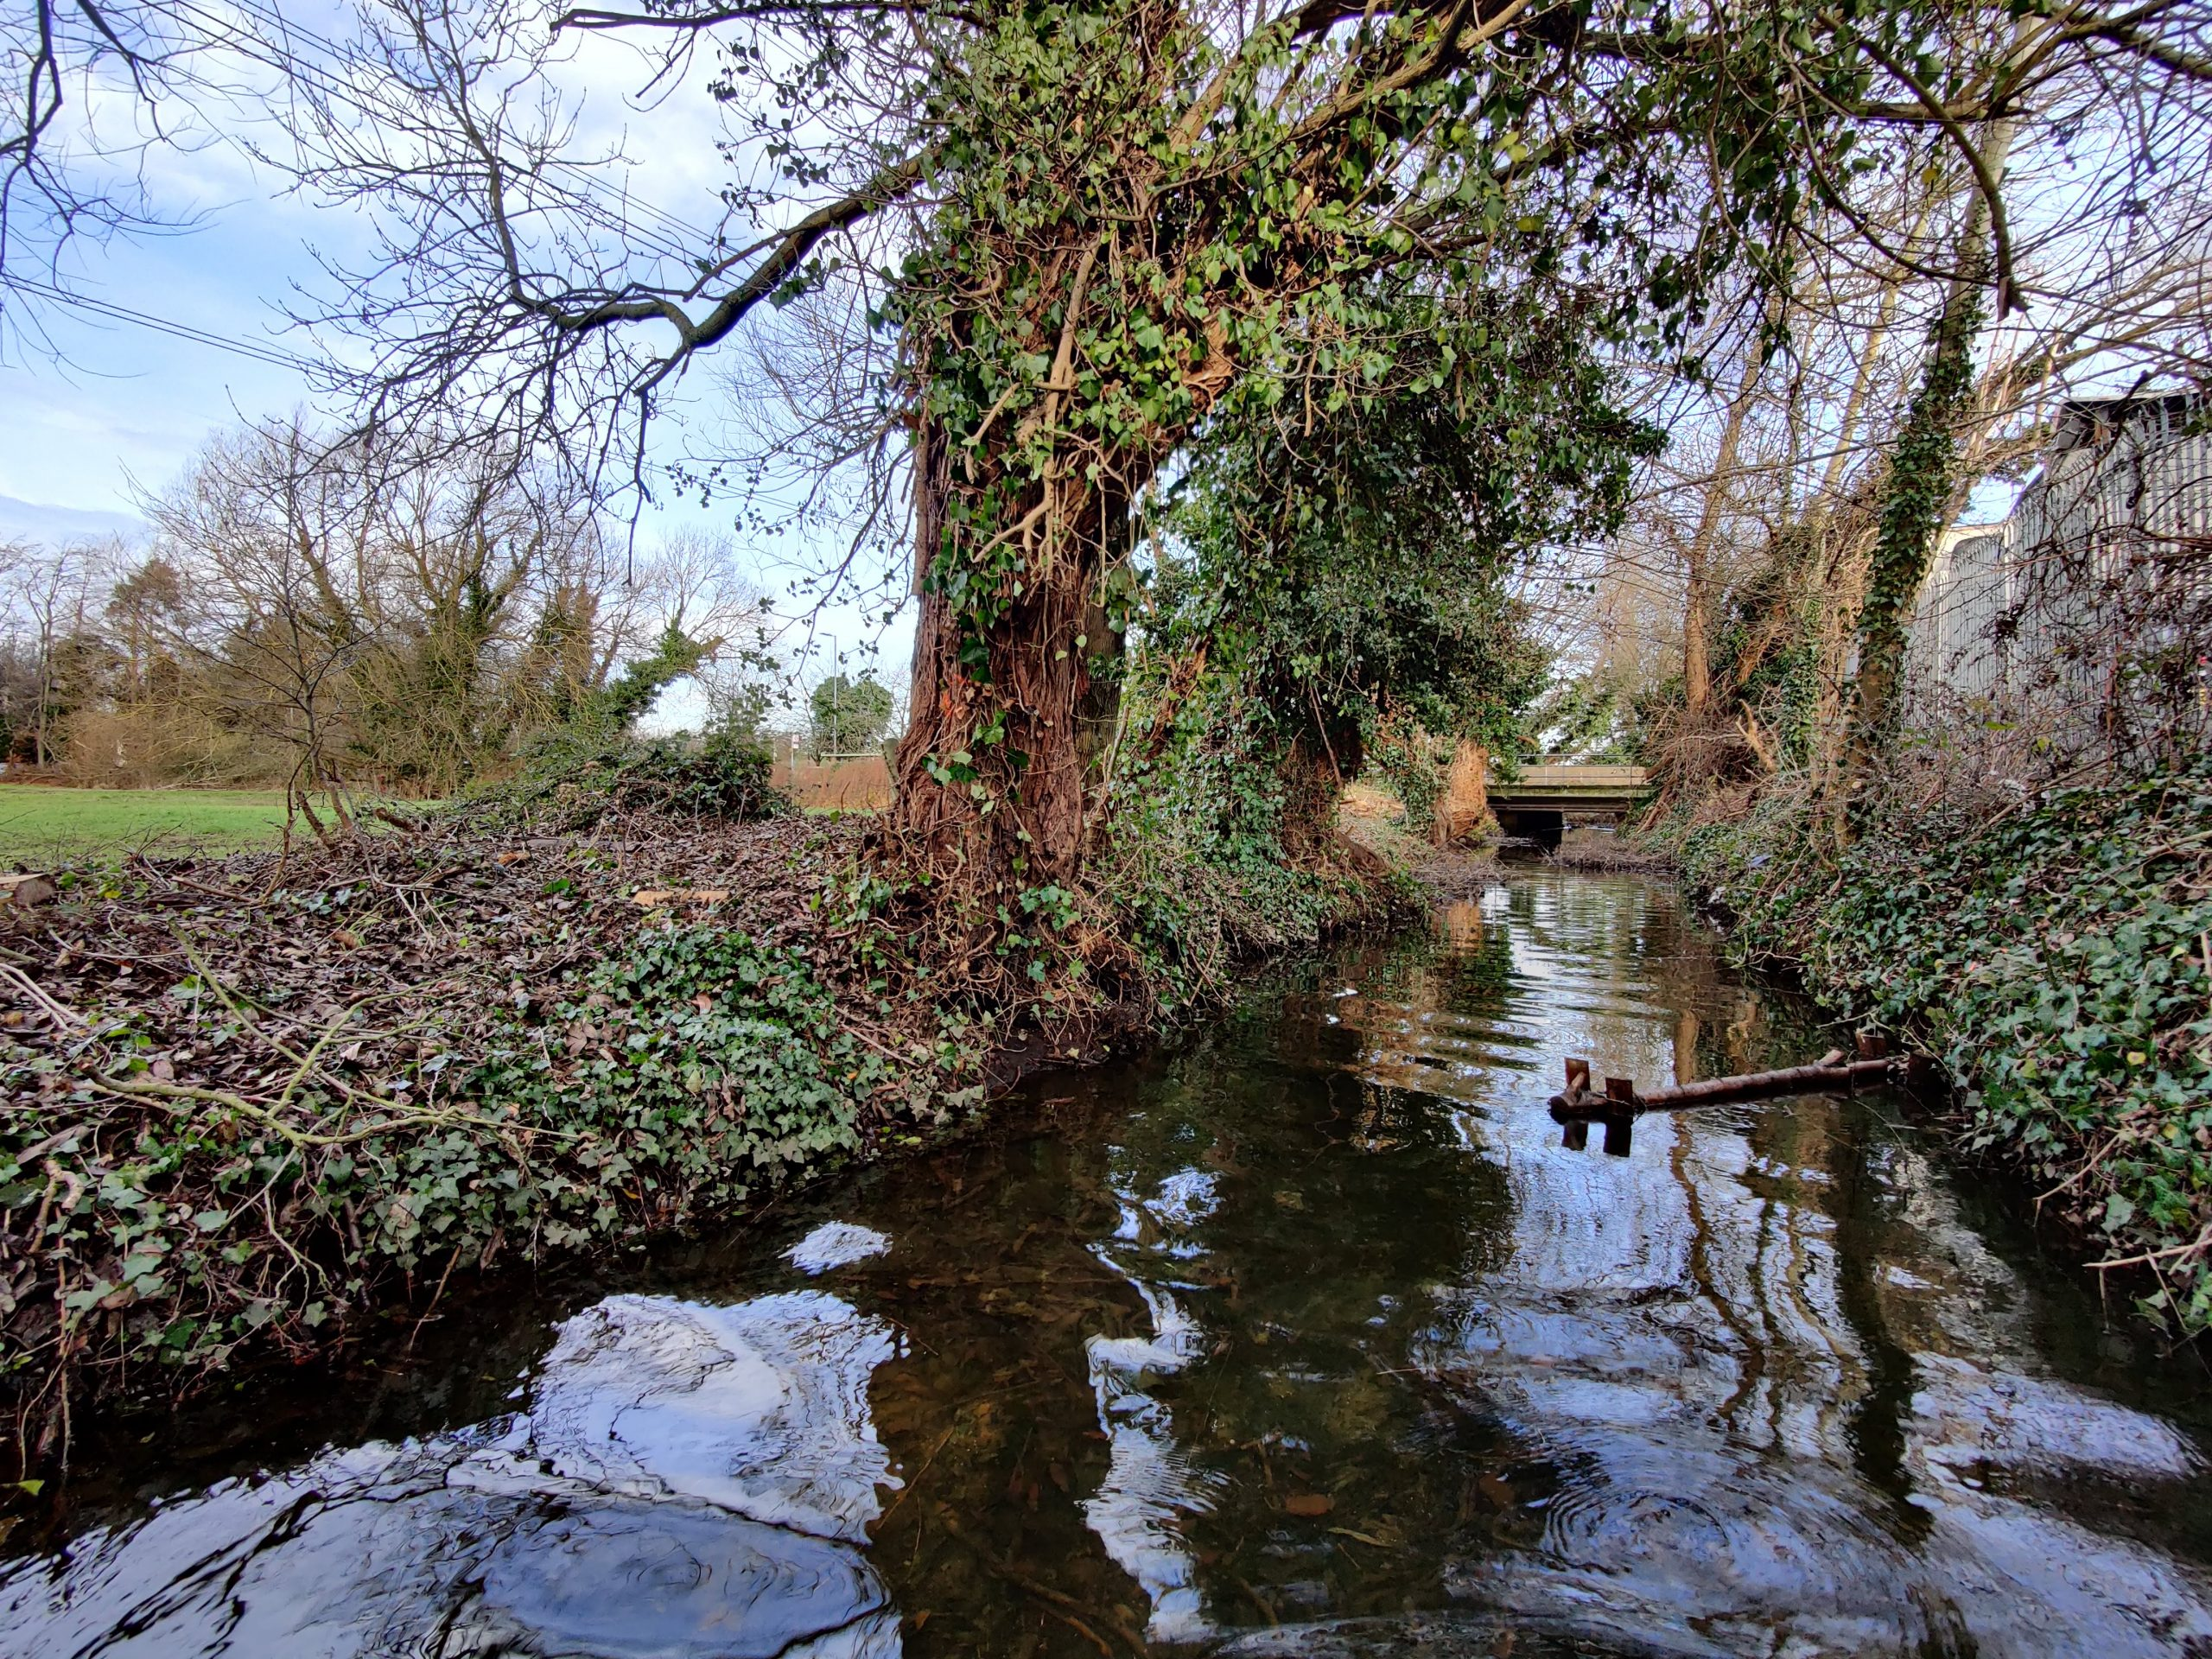 Thanks to a volunteer-led restoration project, Horton Brook is now visible to Crown Meadow residents for the first time in many years.